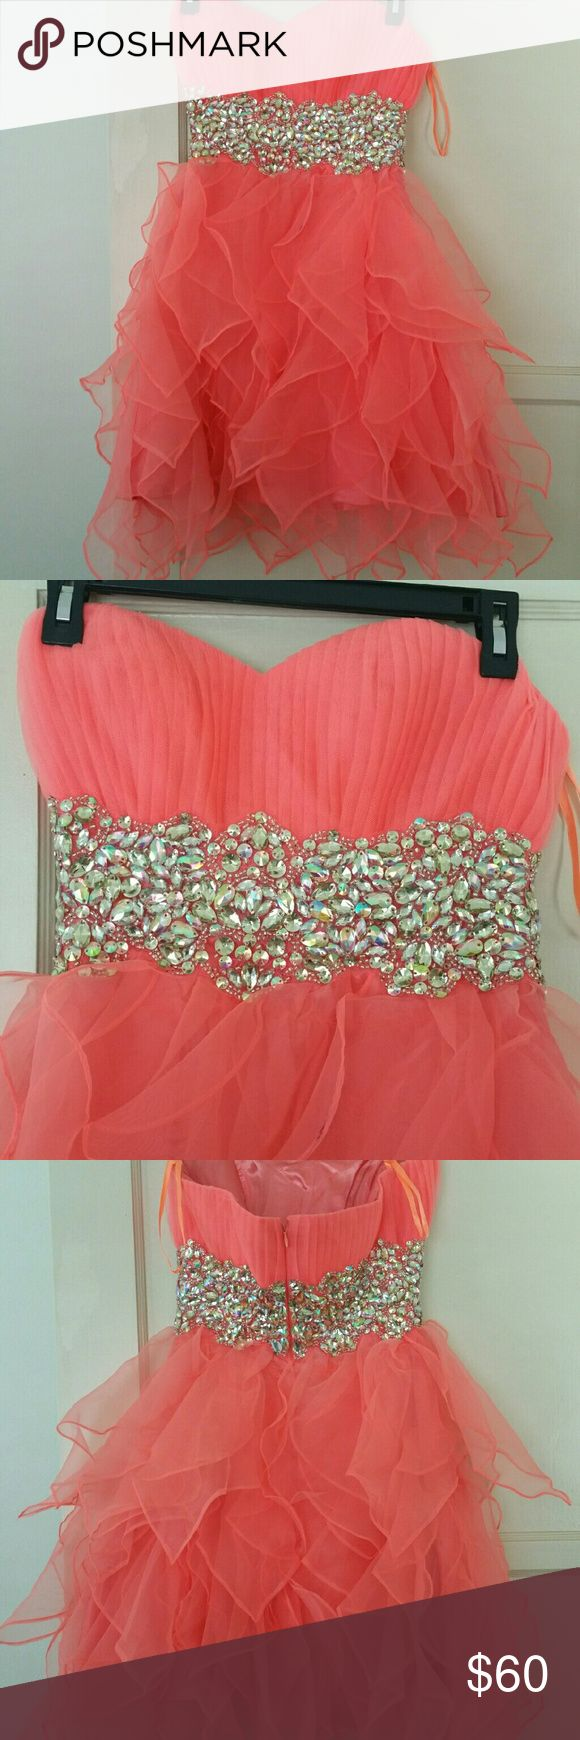 Formal Short coral dress - size S Strapless with embellishment which is all in place. Worn once to a wedding Dresses Prom